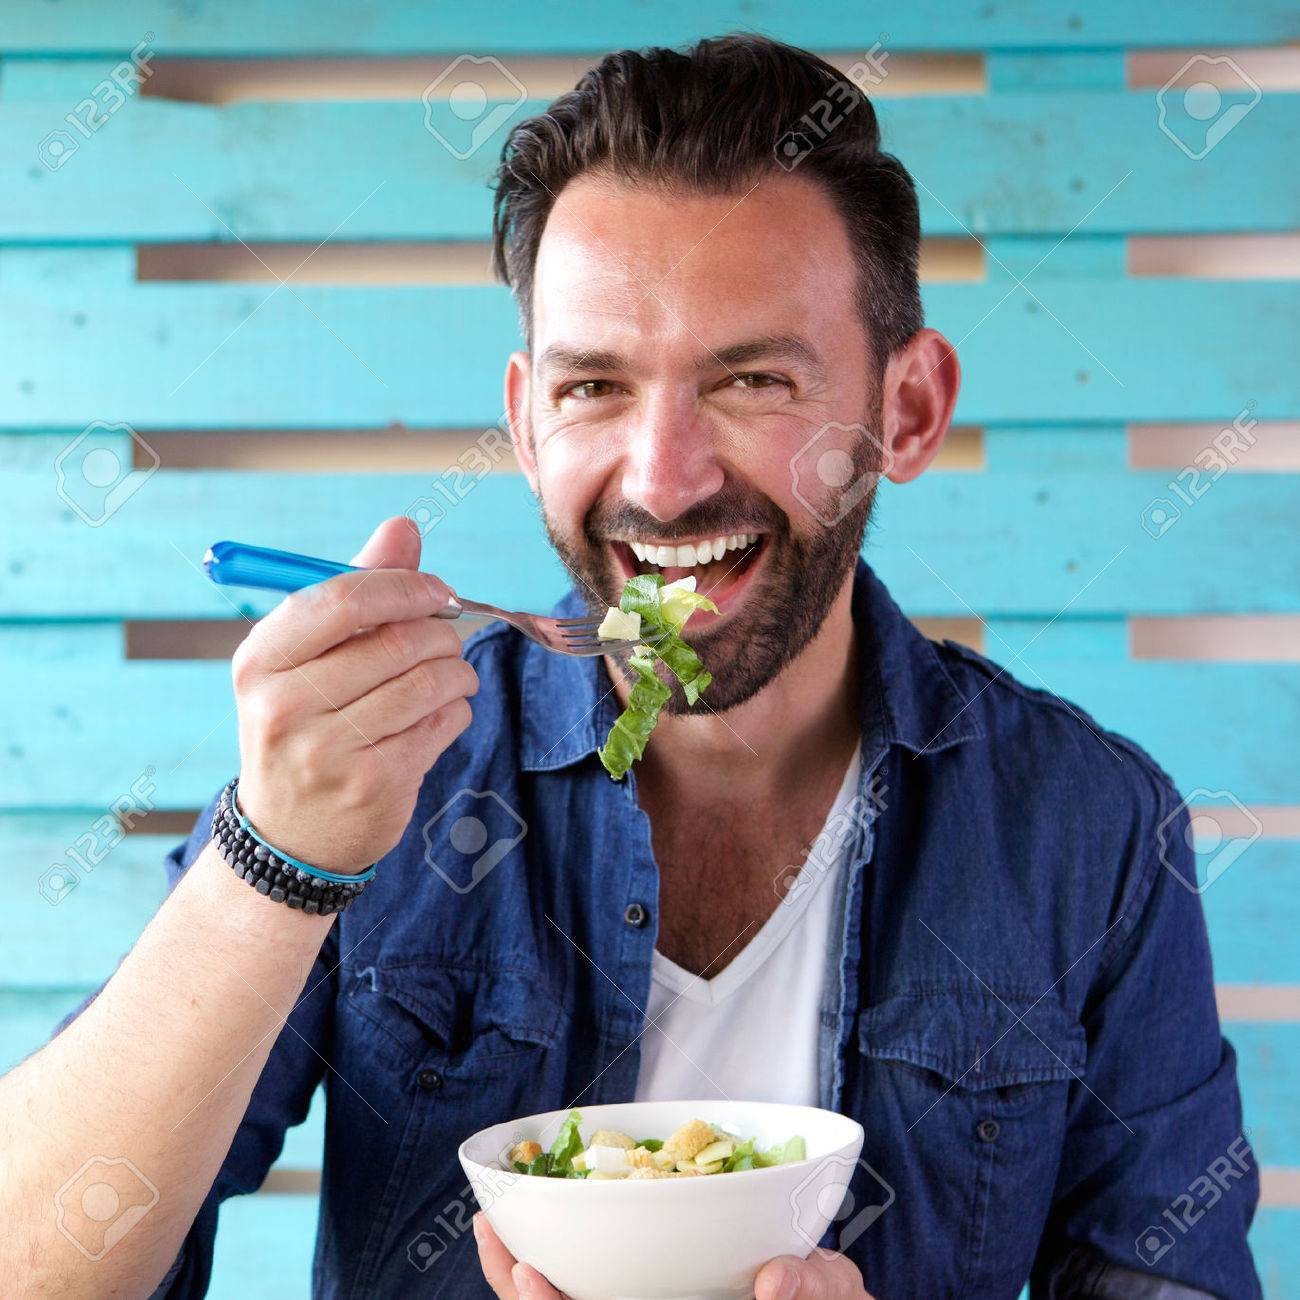 Close up portrait of cheerful man eating salad from bowl - 63536620